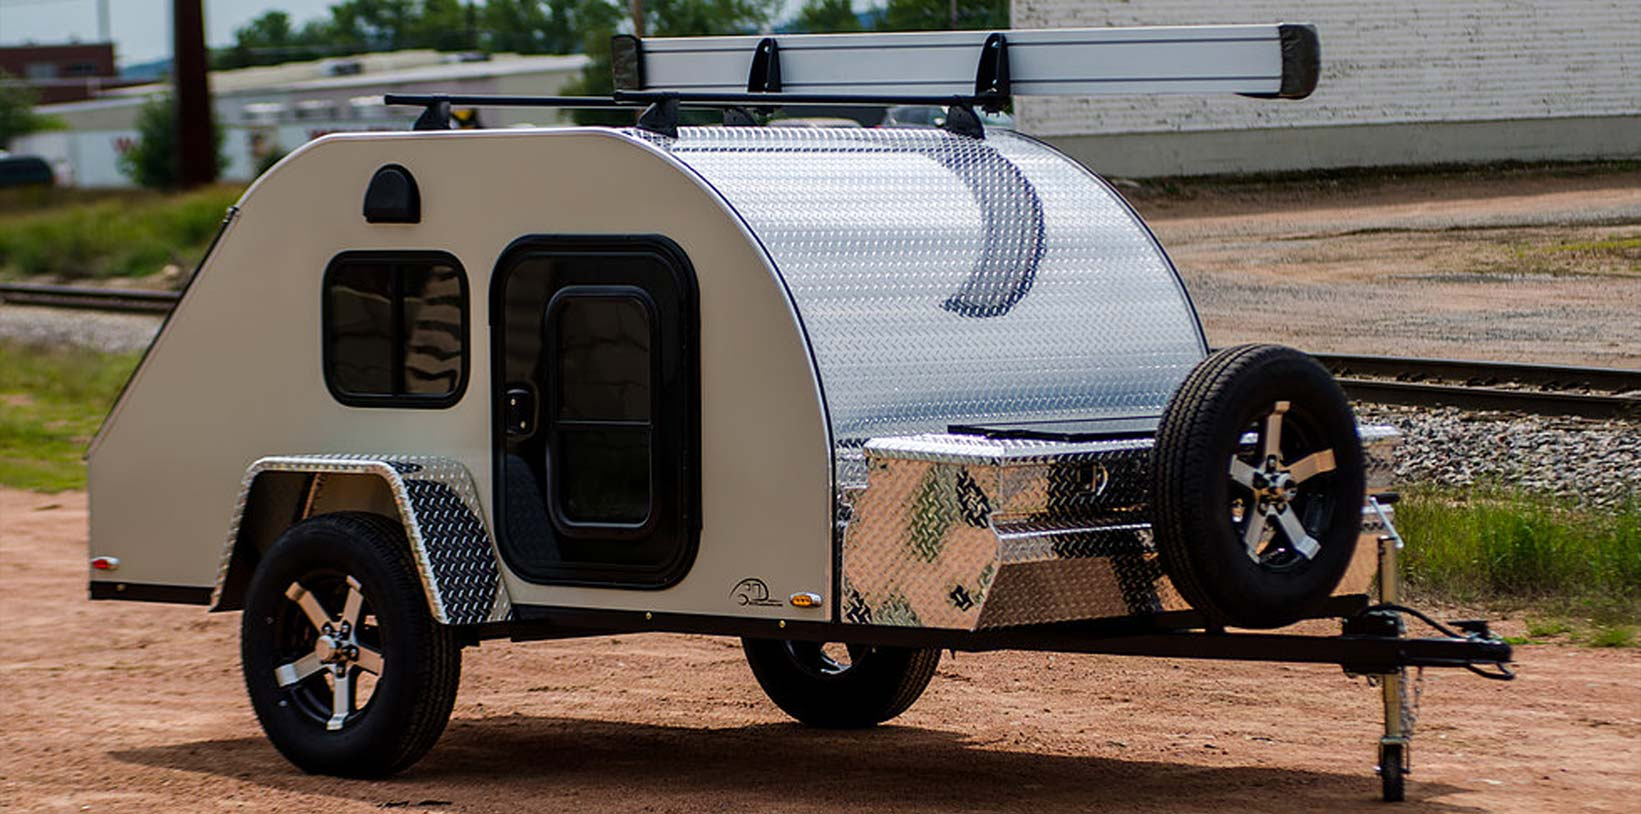 Sleek Teardrop Expedition Trailers Lightweight Campers Trailers Teardrop Expedition Trailers Lightweight Campers Teardrop Campers Sale Craigslist Sale Iowa Teardrop Campers curbed Teardrop Campers For Sale